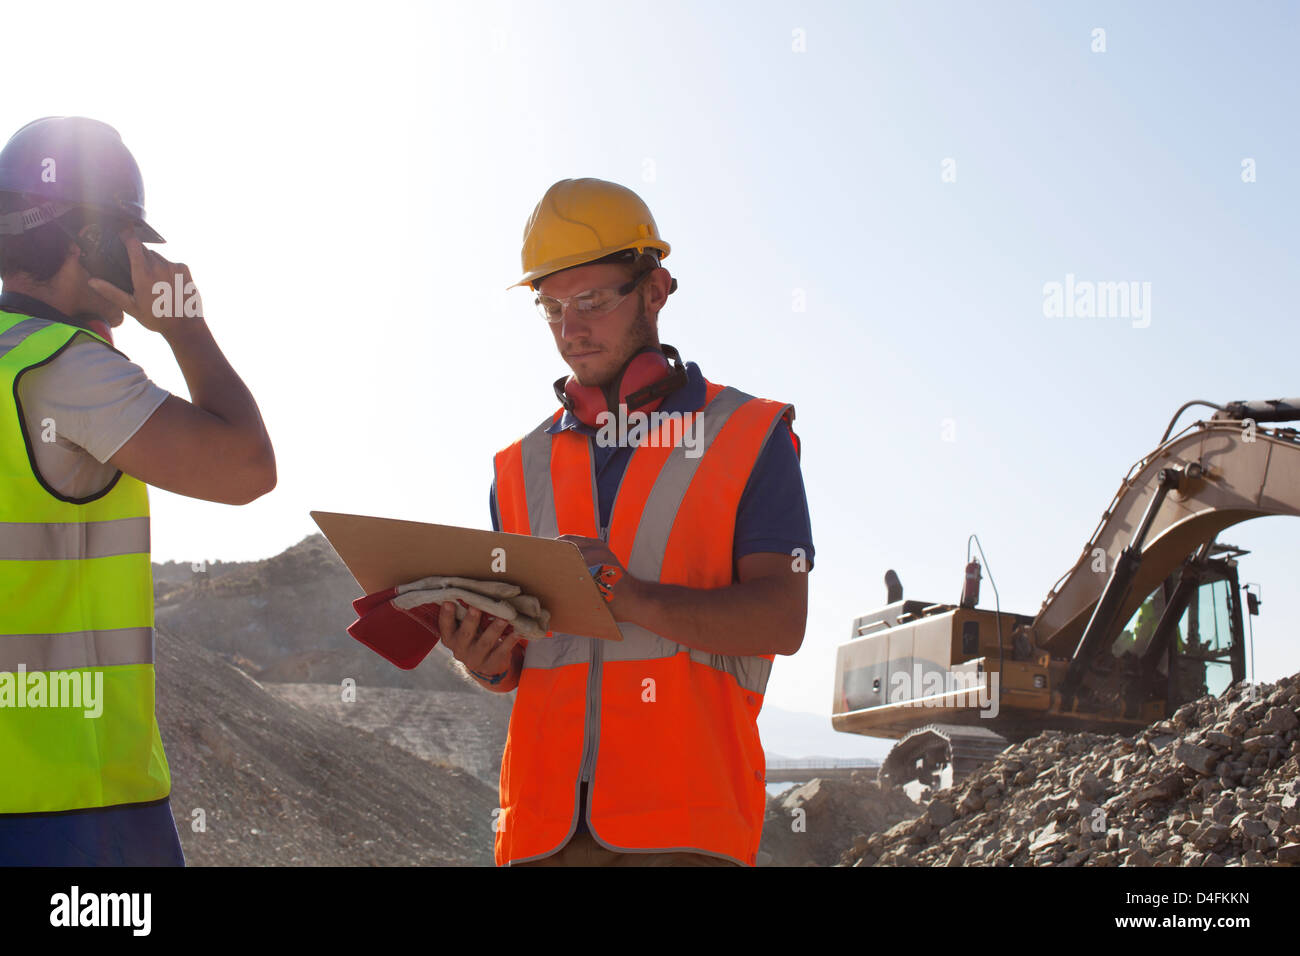 Workers standing in quarry - Stock Image